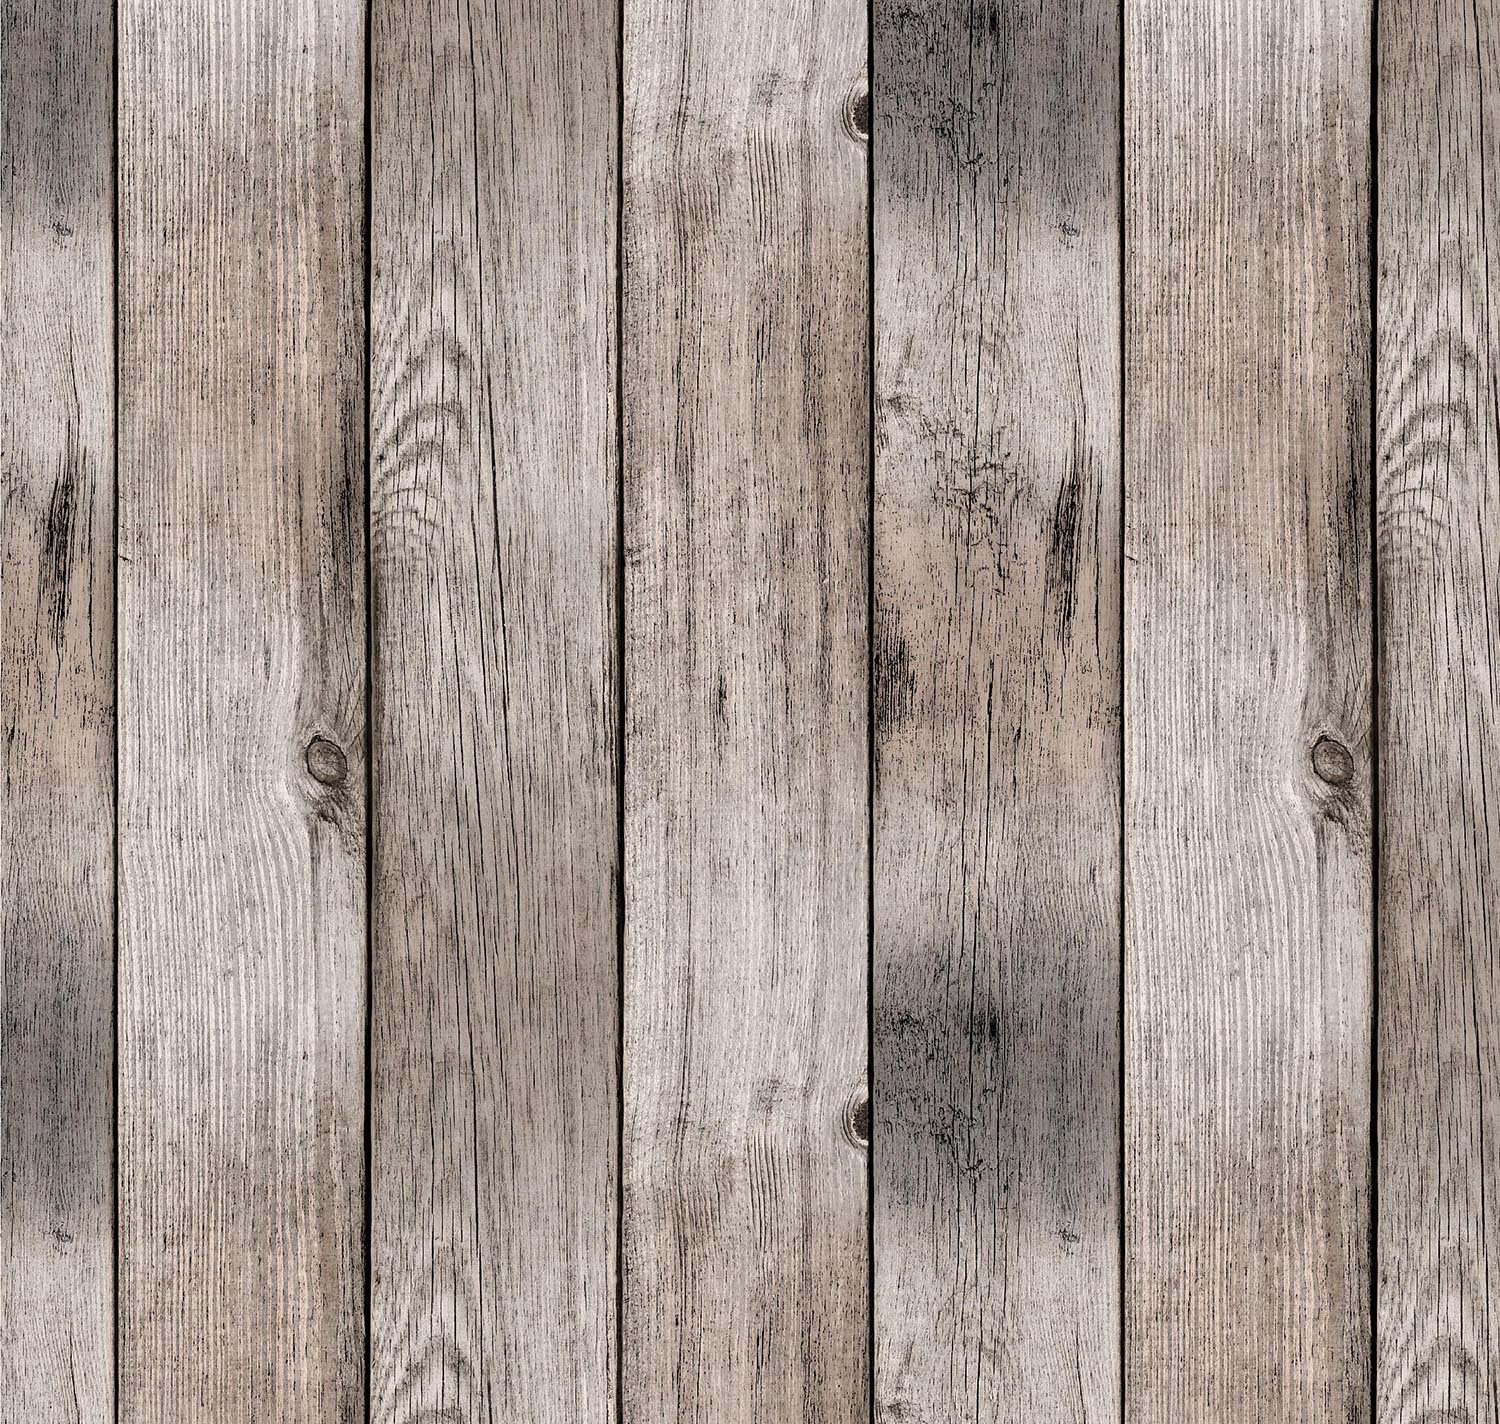 Round Tablecloth 55-inch wide | Antique Rustic Wood Grain Vinyl Indoor & Outdoor Table Cover